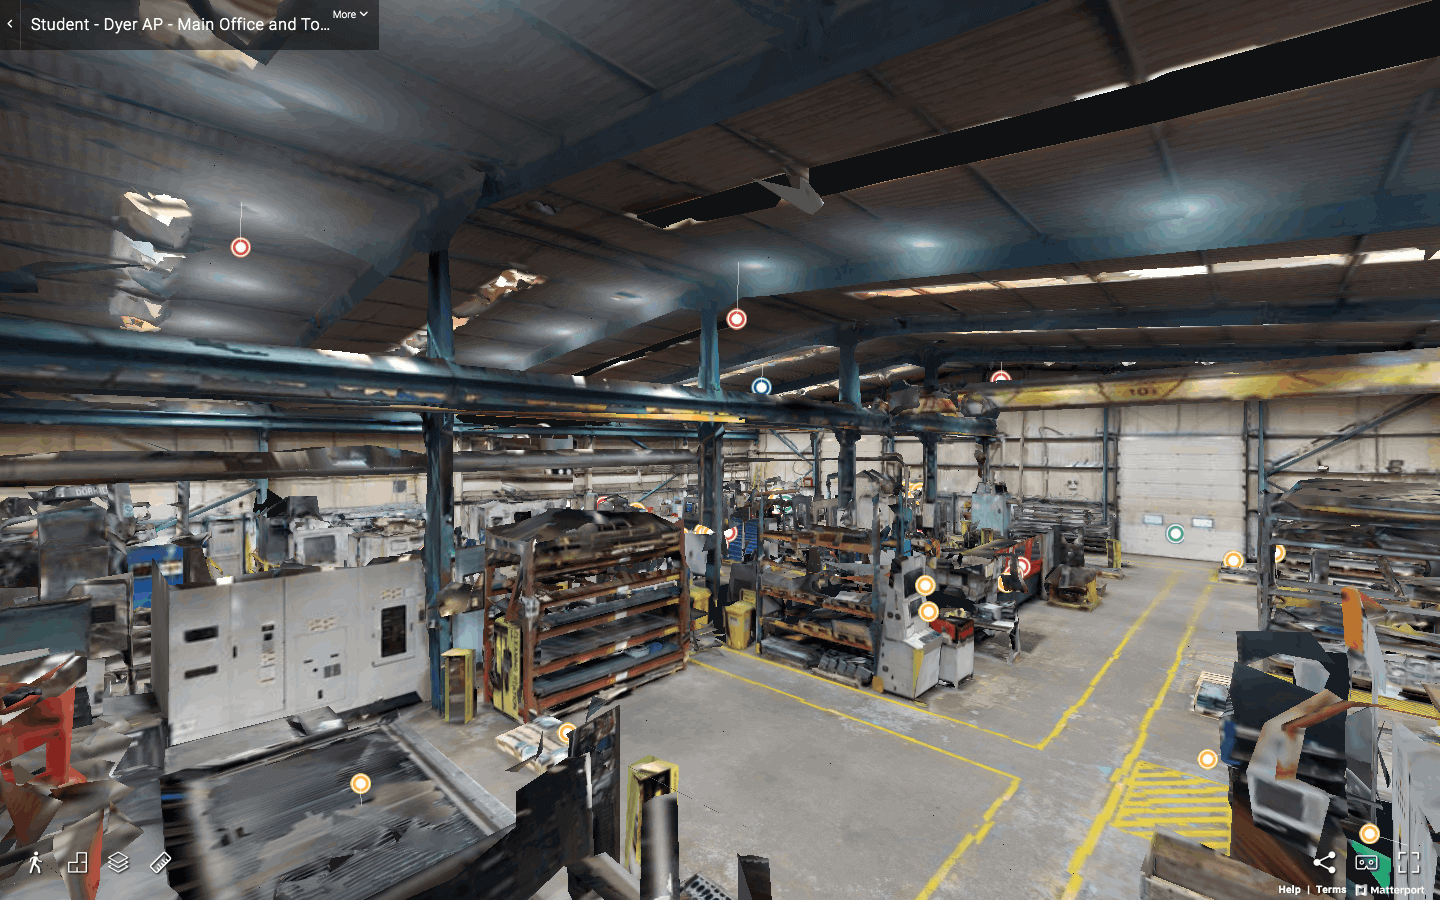 360 virtual tour of Dyer Engineering